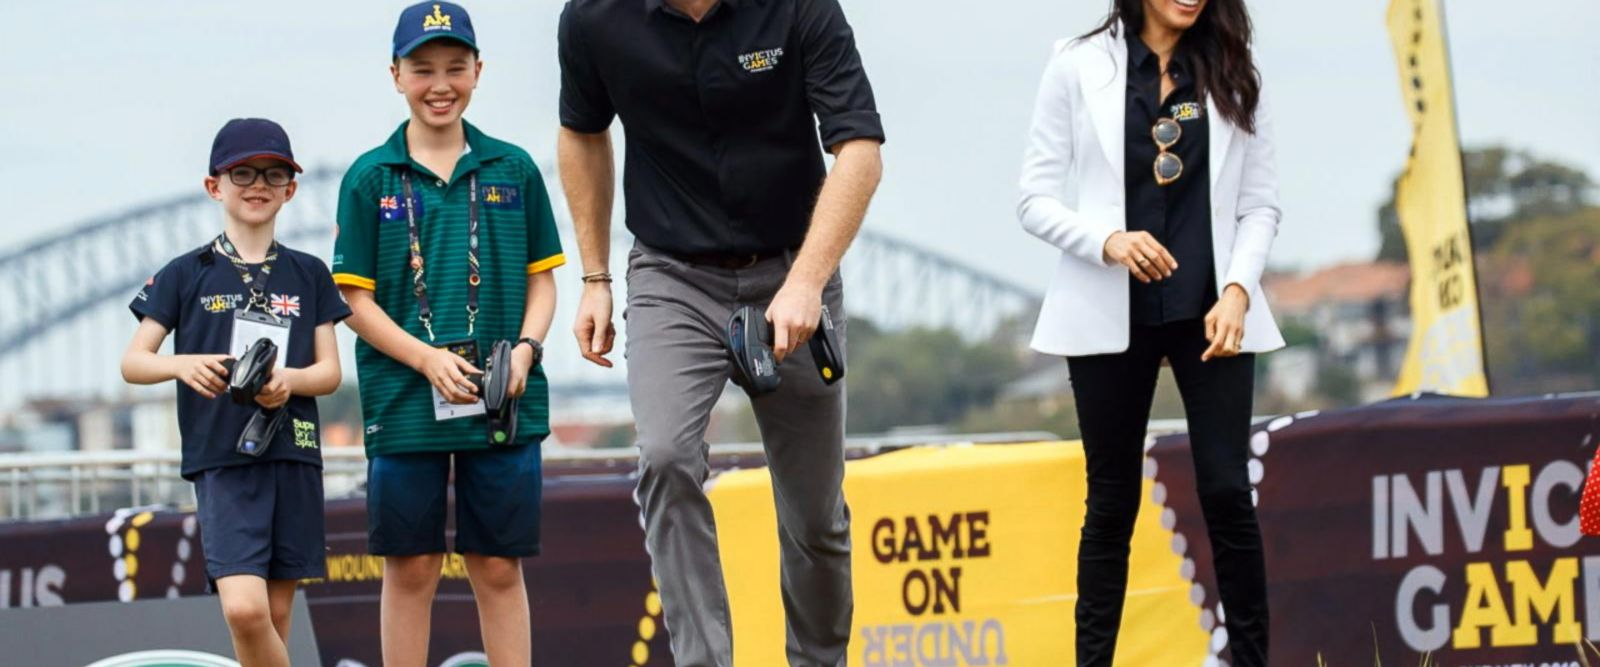 VIDEO: Meghan Markle and Prince Harry return to the Invictus Games